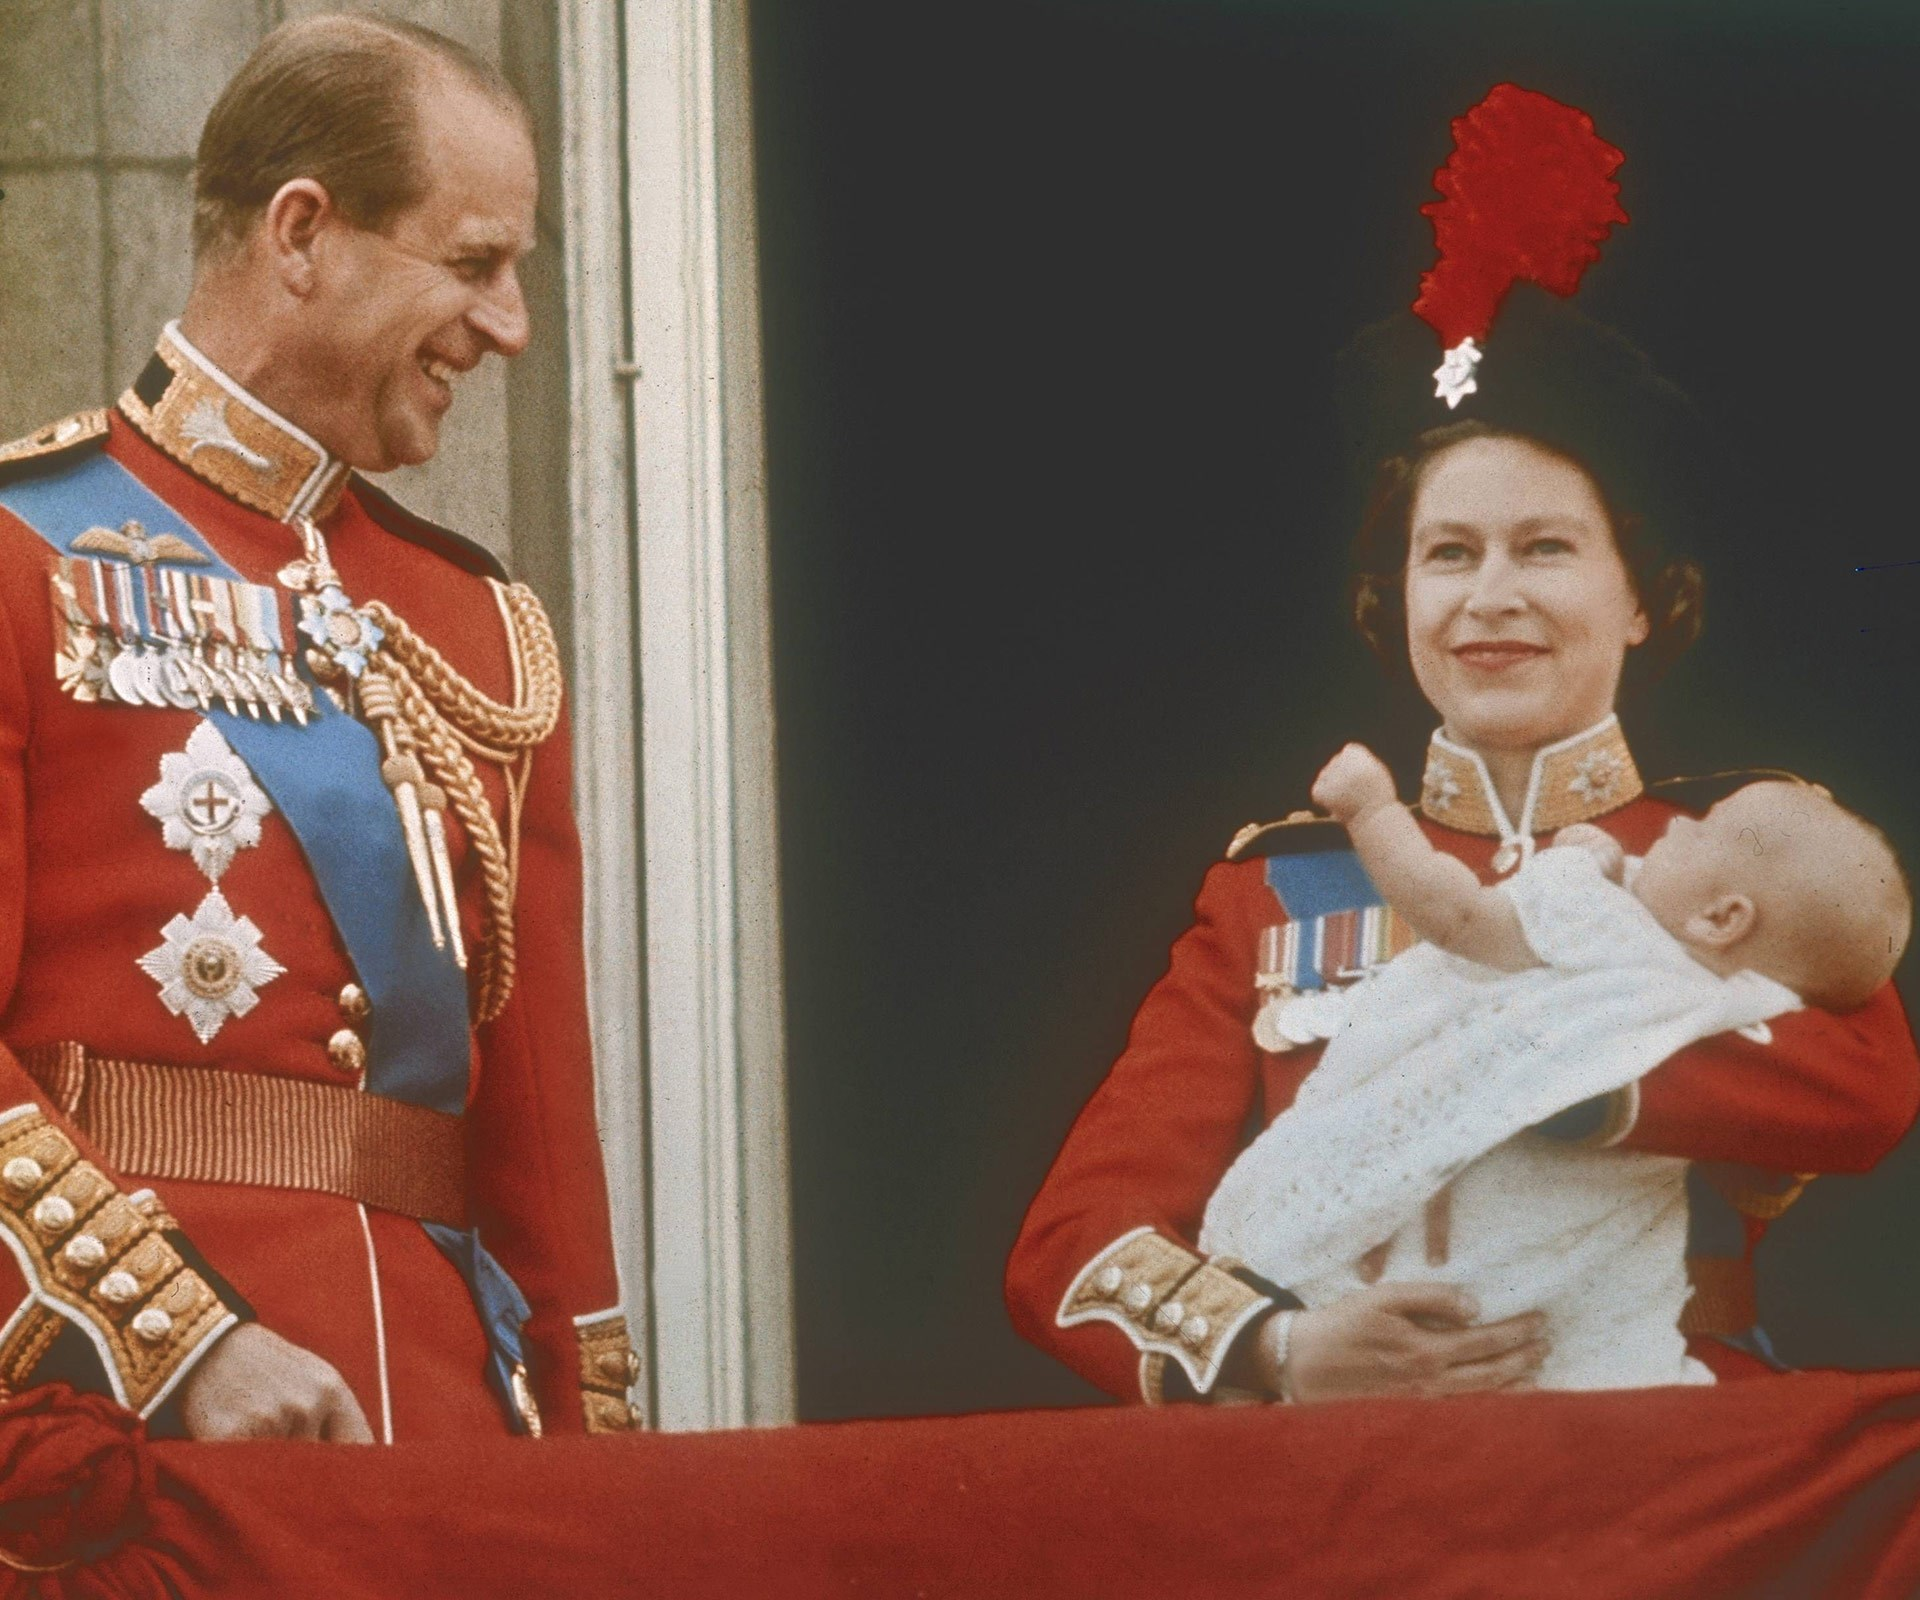 Prince Philip watched his wife fondly as she presented the world her newborn son, Prince Andrew for his first appearance on Buckingham Palace's balcony at Trooping the Colour in 1961.